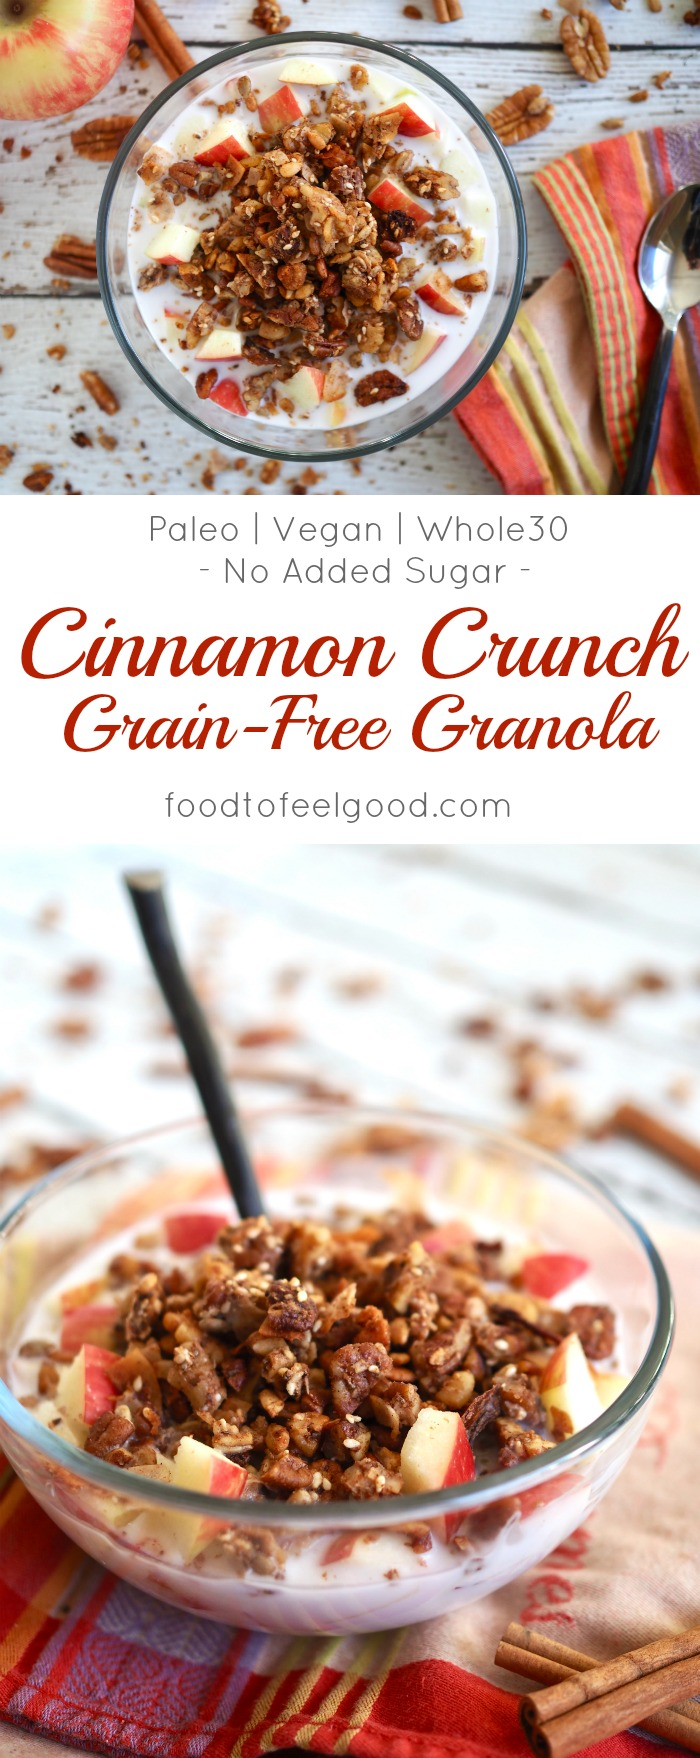 Cinnamon Crunch Grain-Free Granola | Paleo | Whole30 | Vegan | No Sugar Added | This toasted, golden granola is full of super healthy nuts, seeds, and coconut flakes. It's sweetened only with applesauce, vanilla, and cinnamon - a quick and healthy meal the whole family will love! Amazing over coconut milk with fresh fruit. #whole30 #paleorecipes #granolarecipes #lowcarb #healthybreakfastrecipes